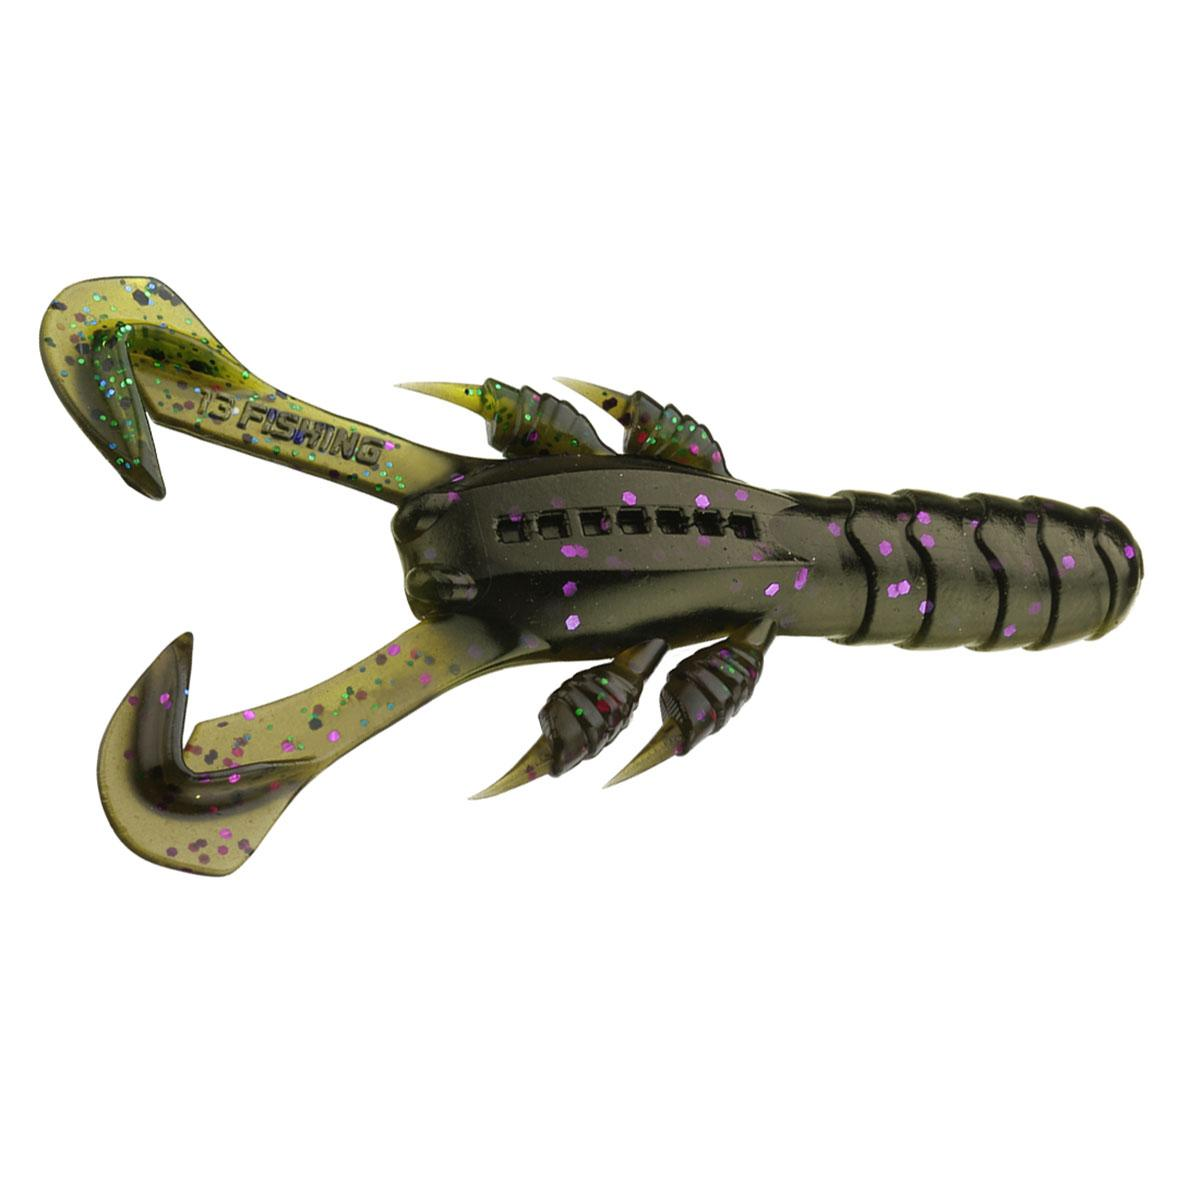 13 Fishing Ninja Craw Ninja Tail Size 3 in Color Mardi Craw